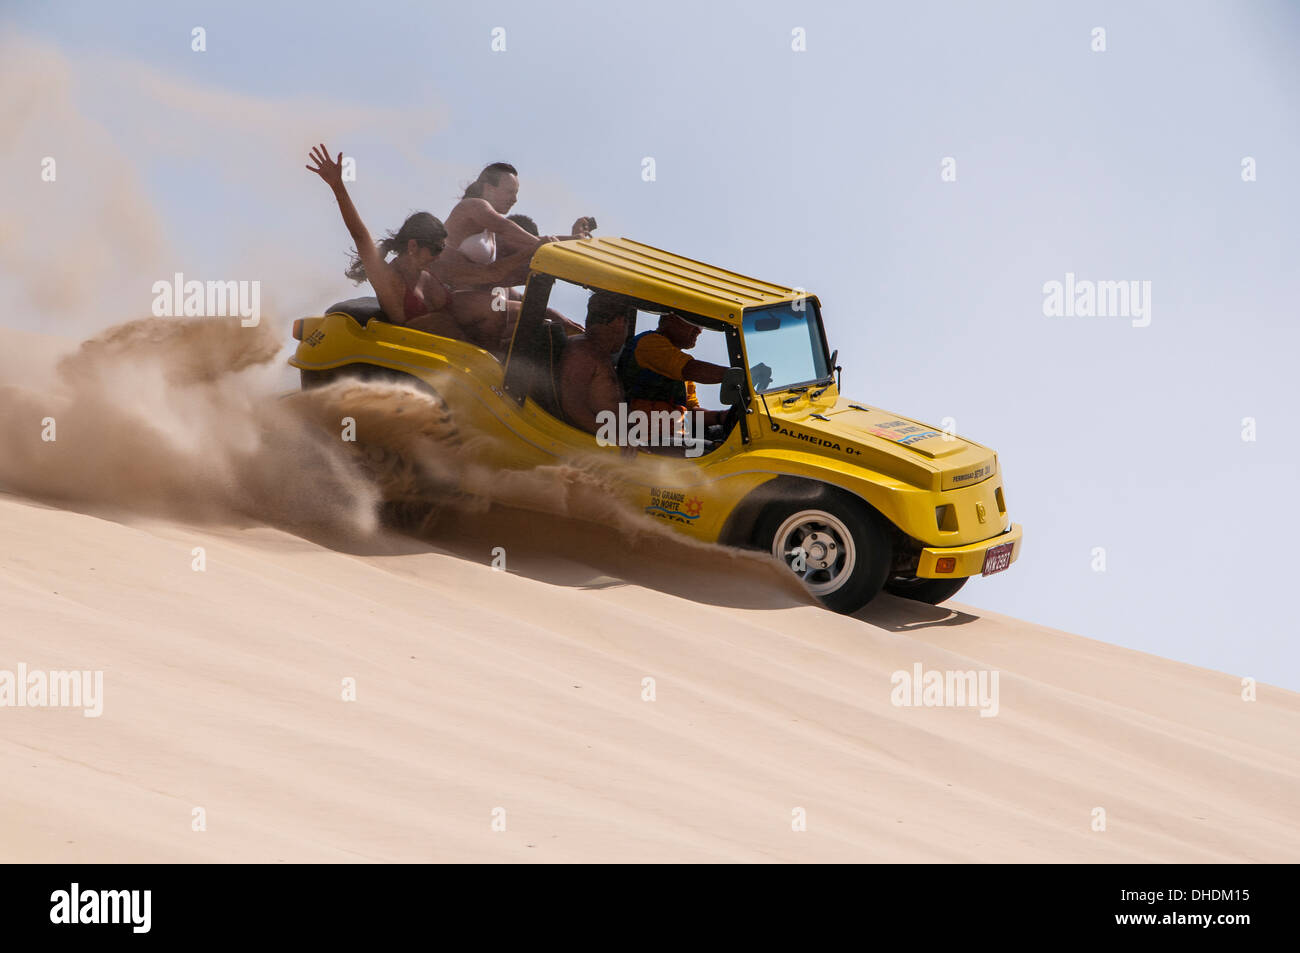 Riding down the sand with sand buggies in Natal, Rio Grande do Norte, Brazil - Stock Image